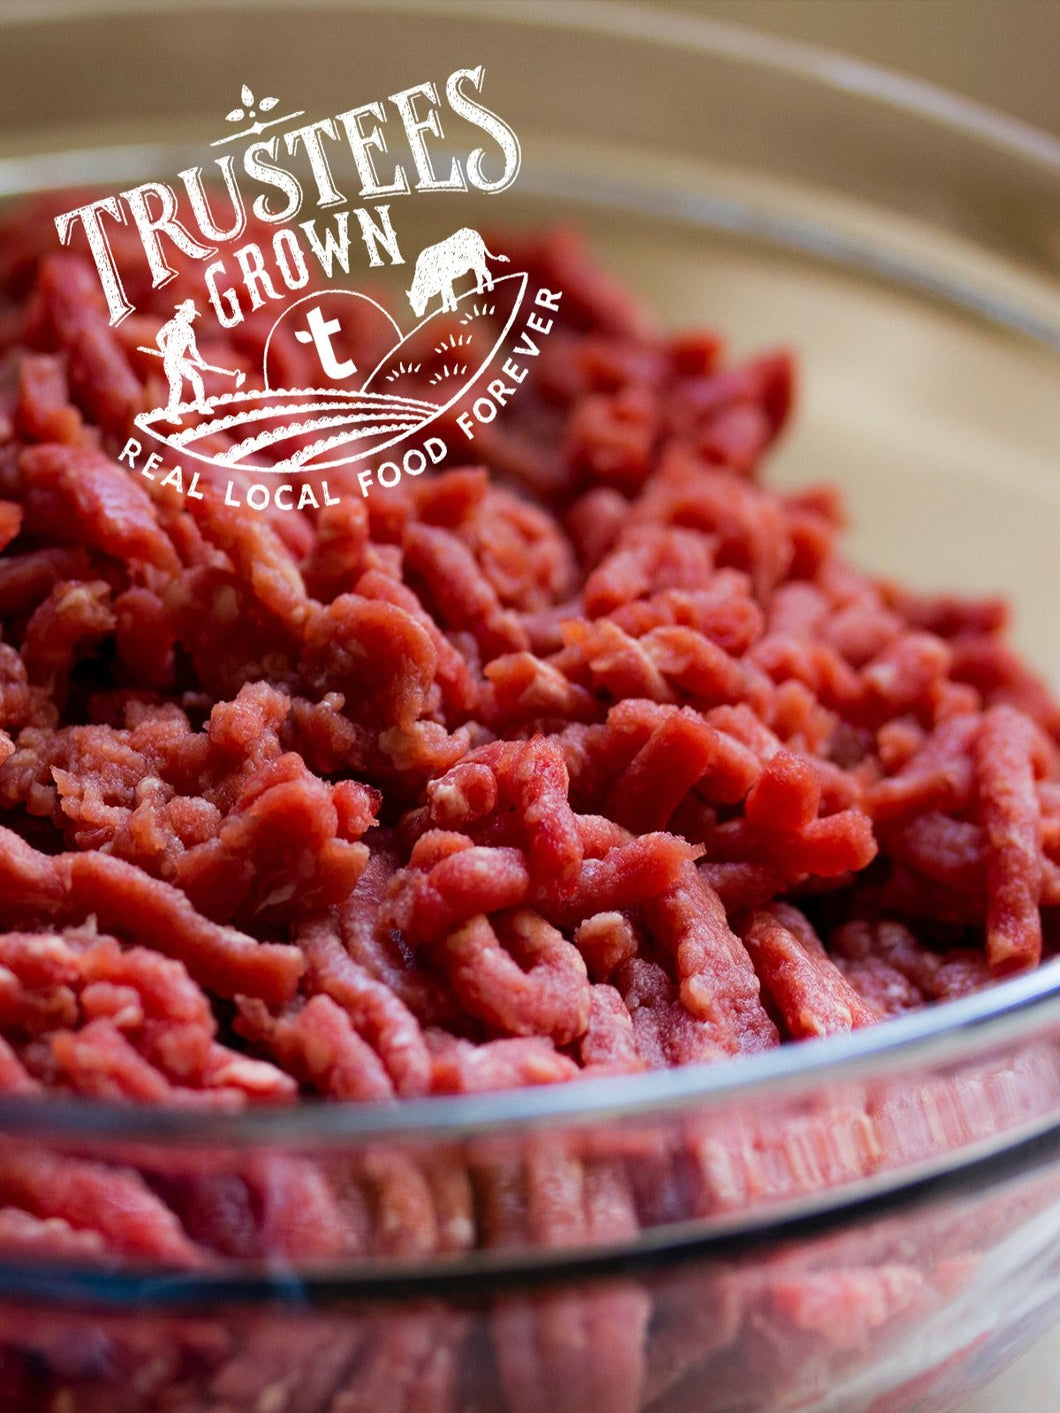 Ground Beef, 100% Grass-fed & Pasture-raised (Appleton Farms - Trustees Grown)